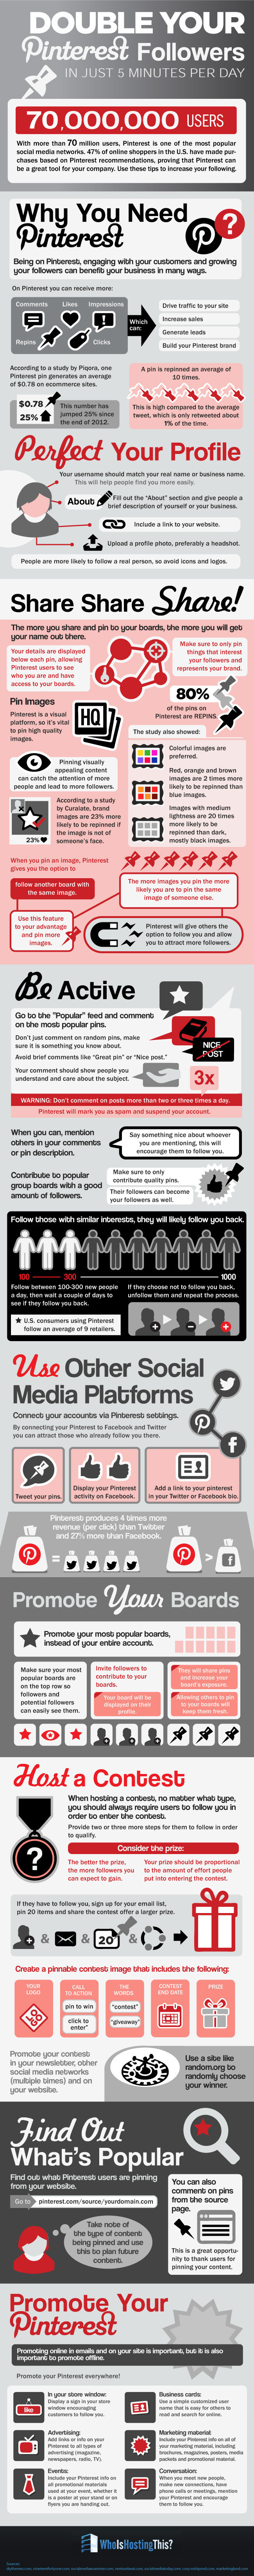 Double your interest followers in just 5 Minutes per day - infographic